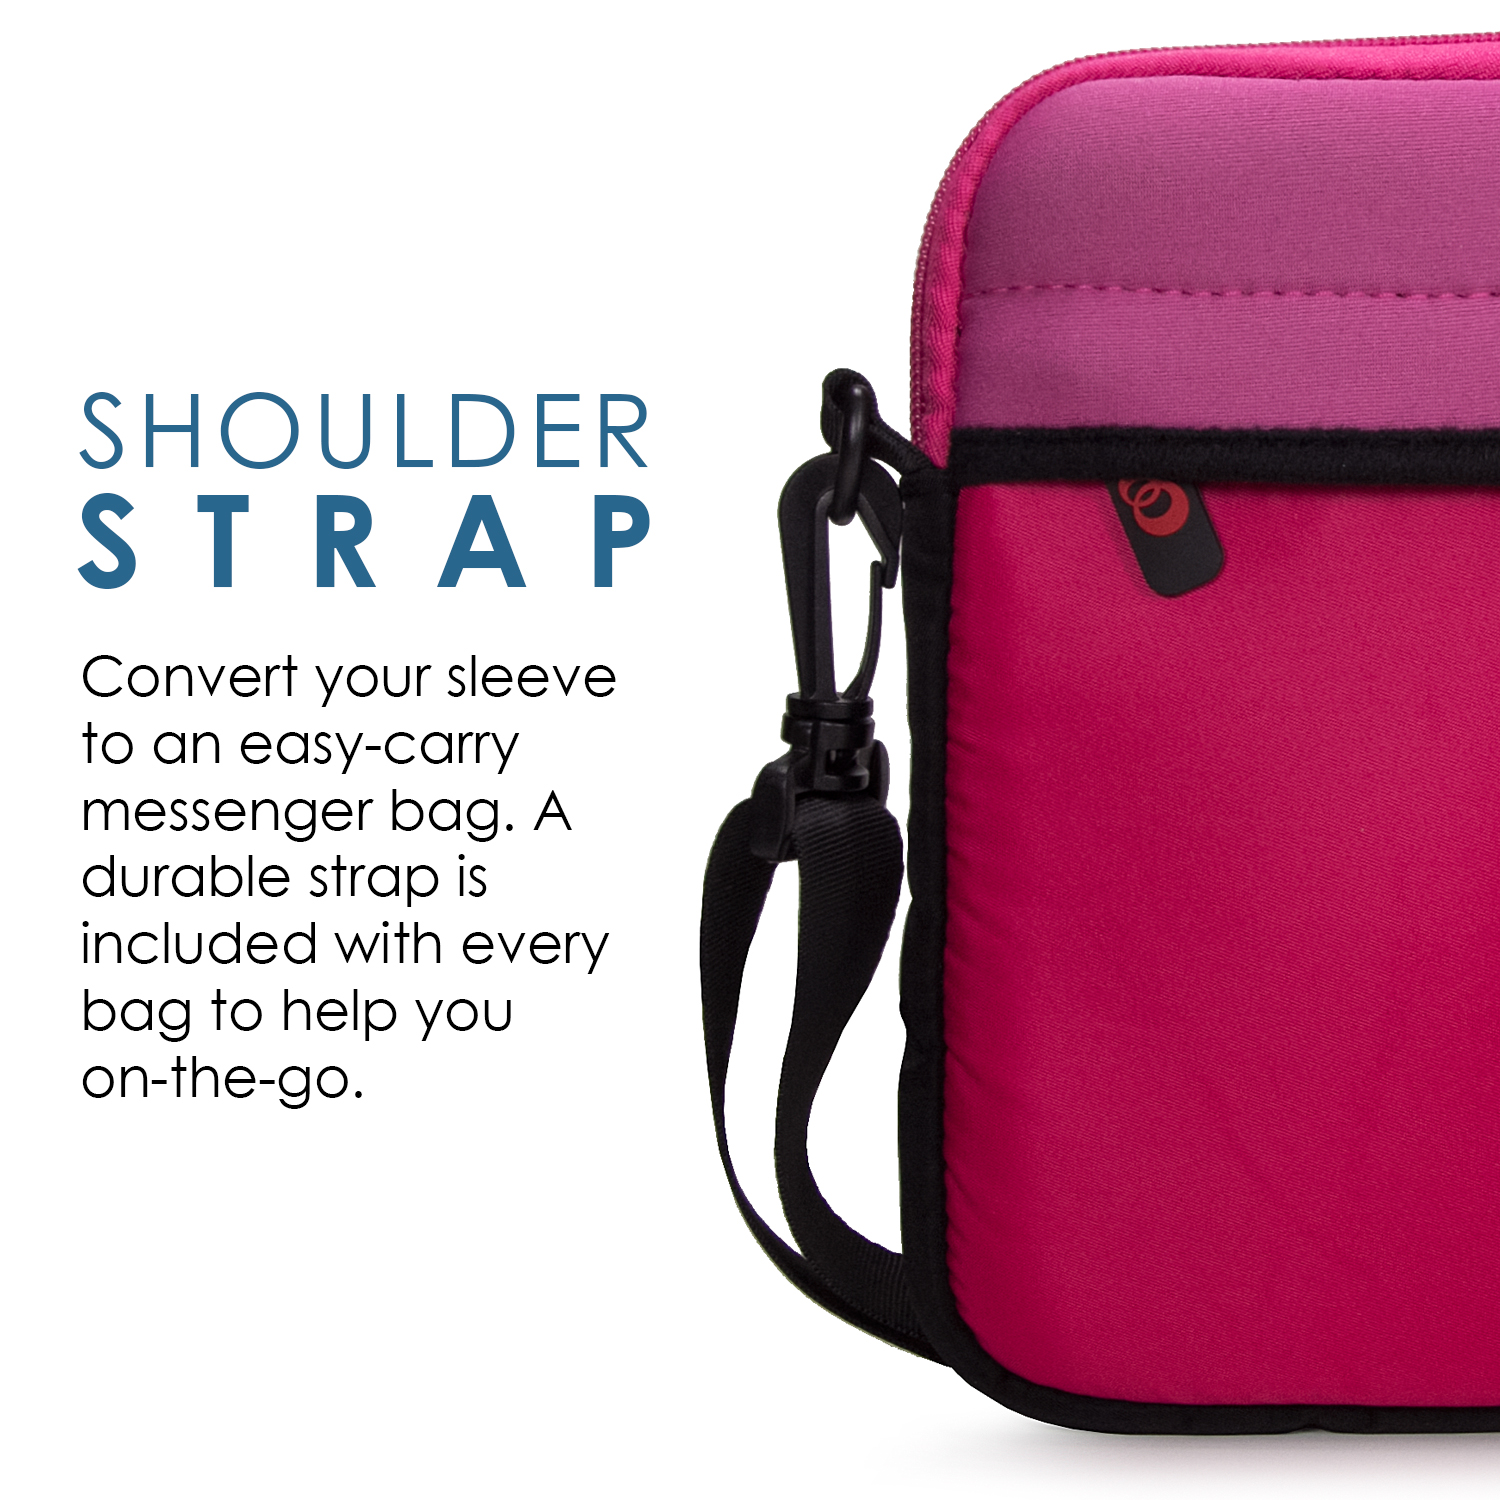 pink carrying bag case for for HP,Lenovo ACER Asus samsung Google 8.9-10.1 Inch Laptop Notebook Computer Tablet PC